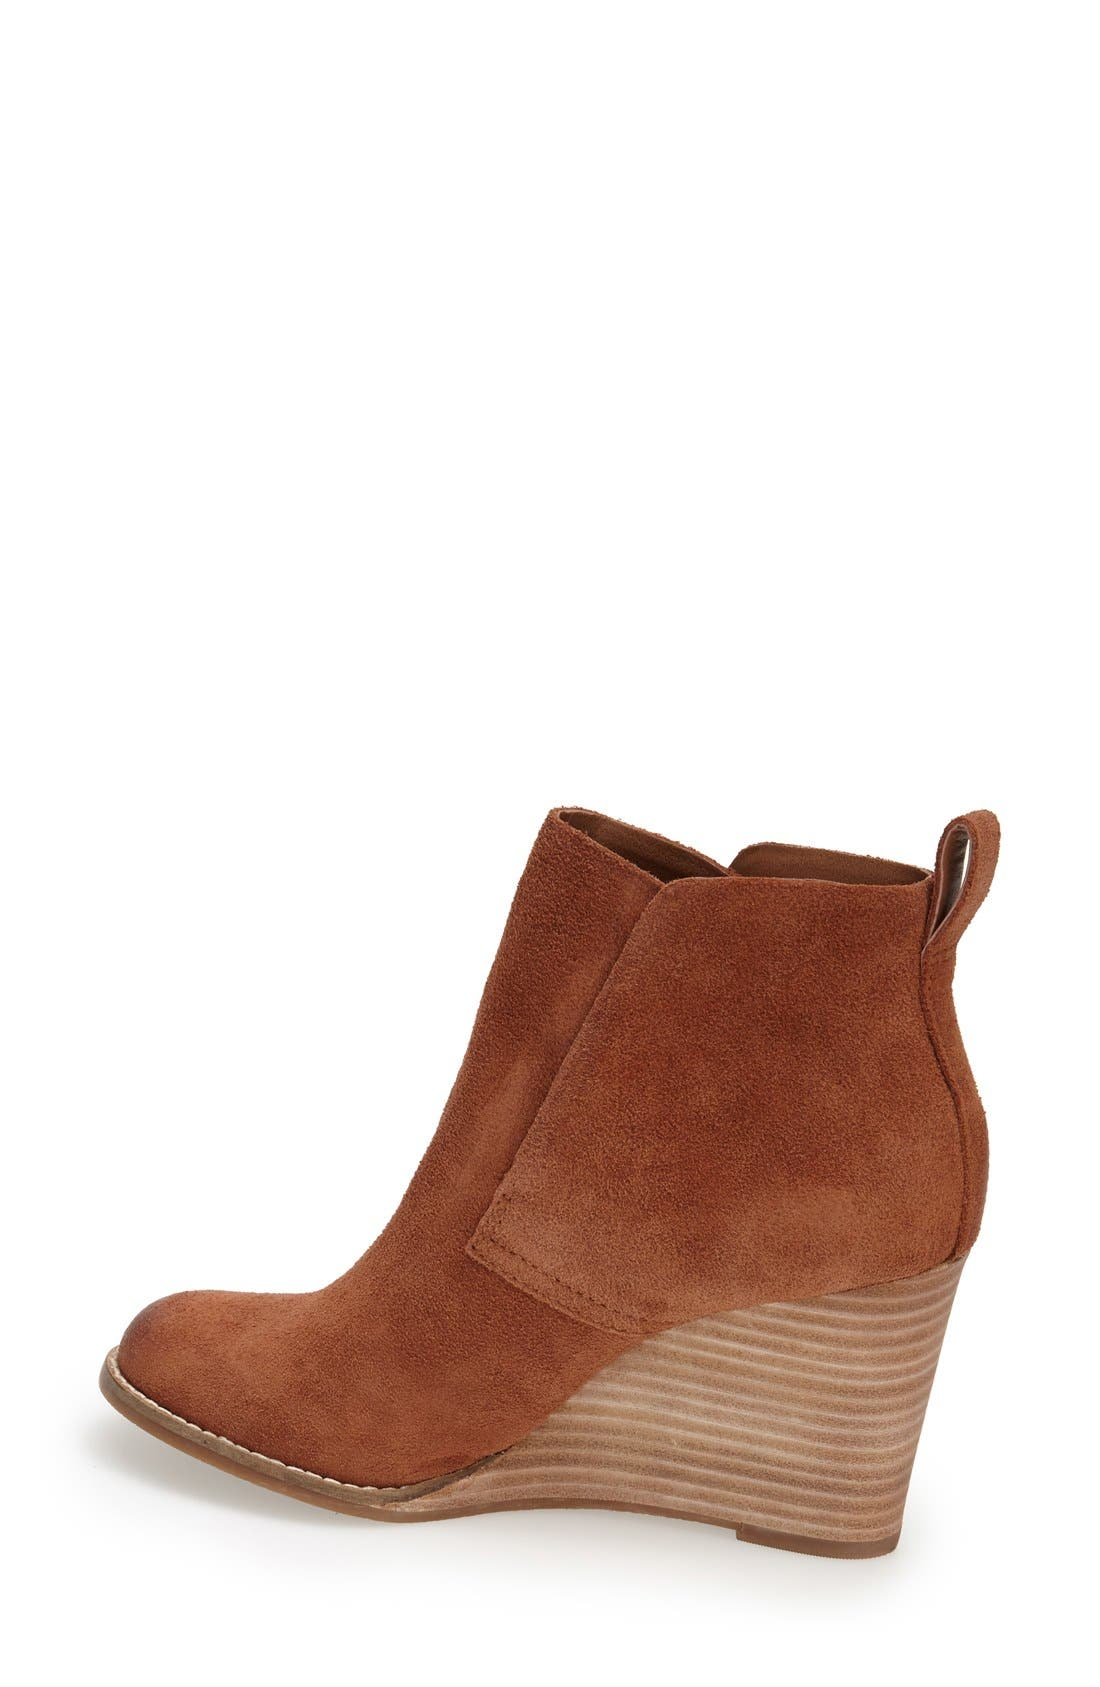 'Yoniana' Wedge Bootie,                             Alternate thumbnail 17, color,